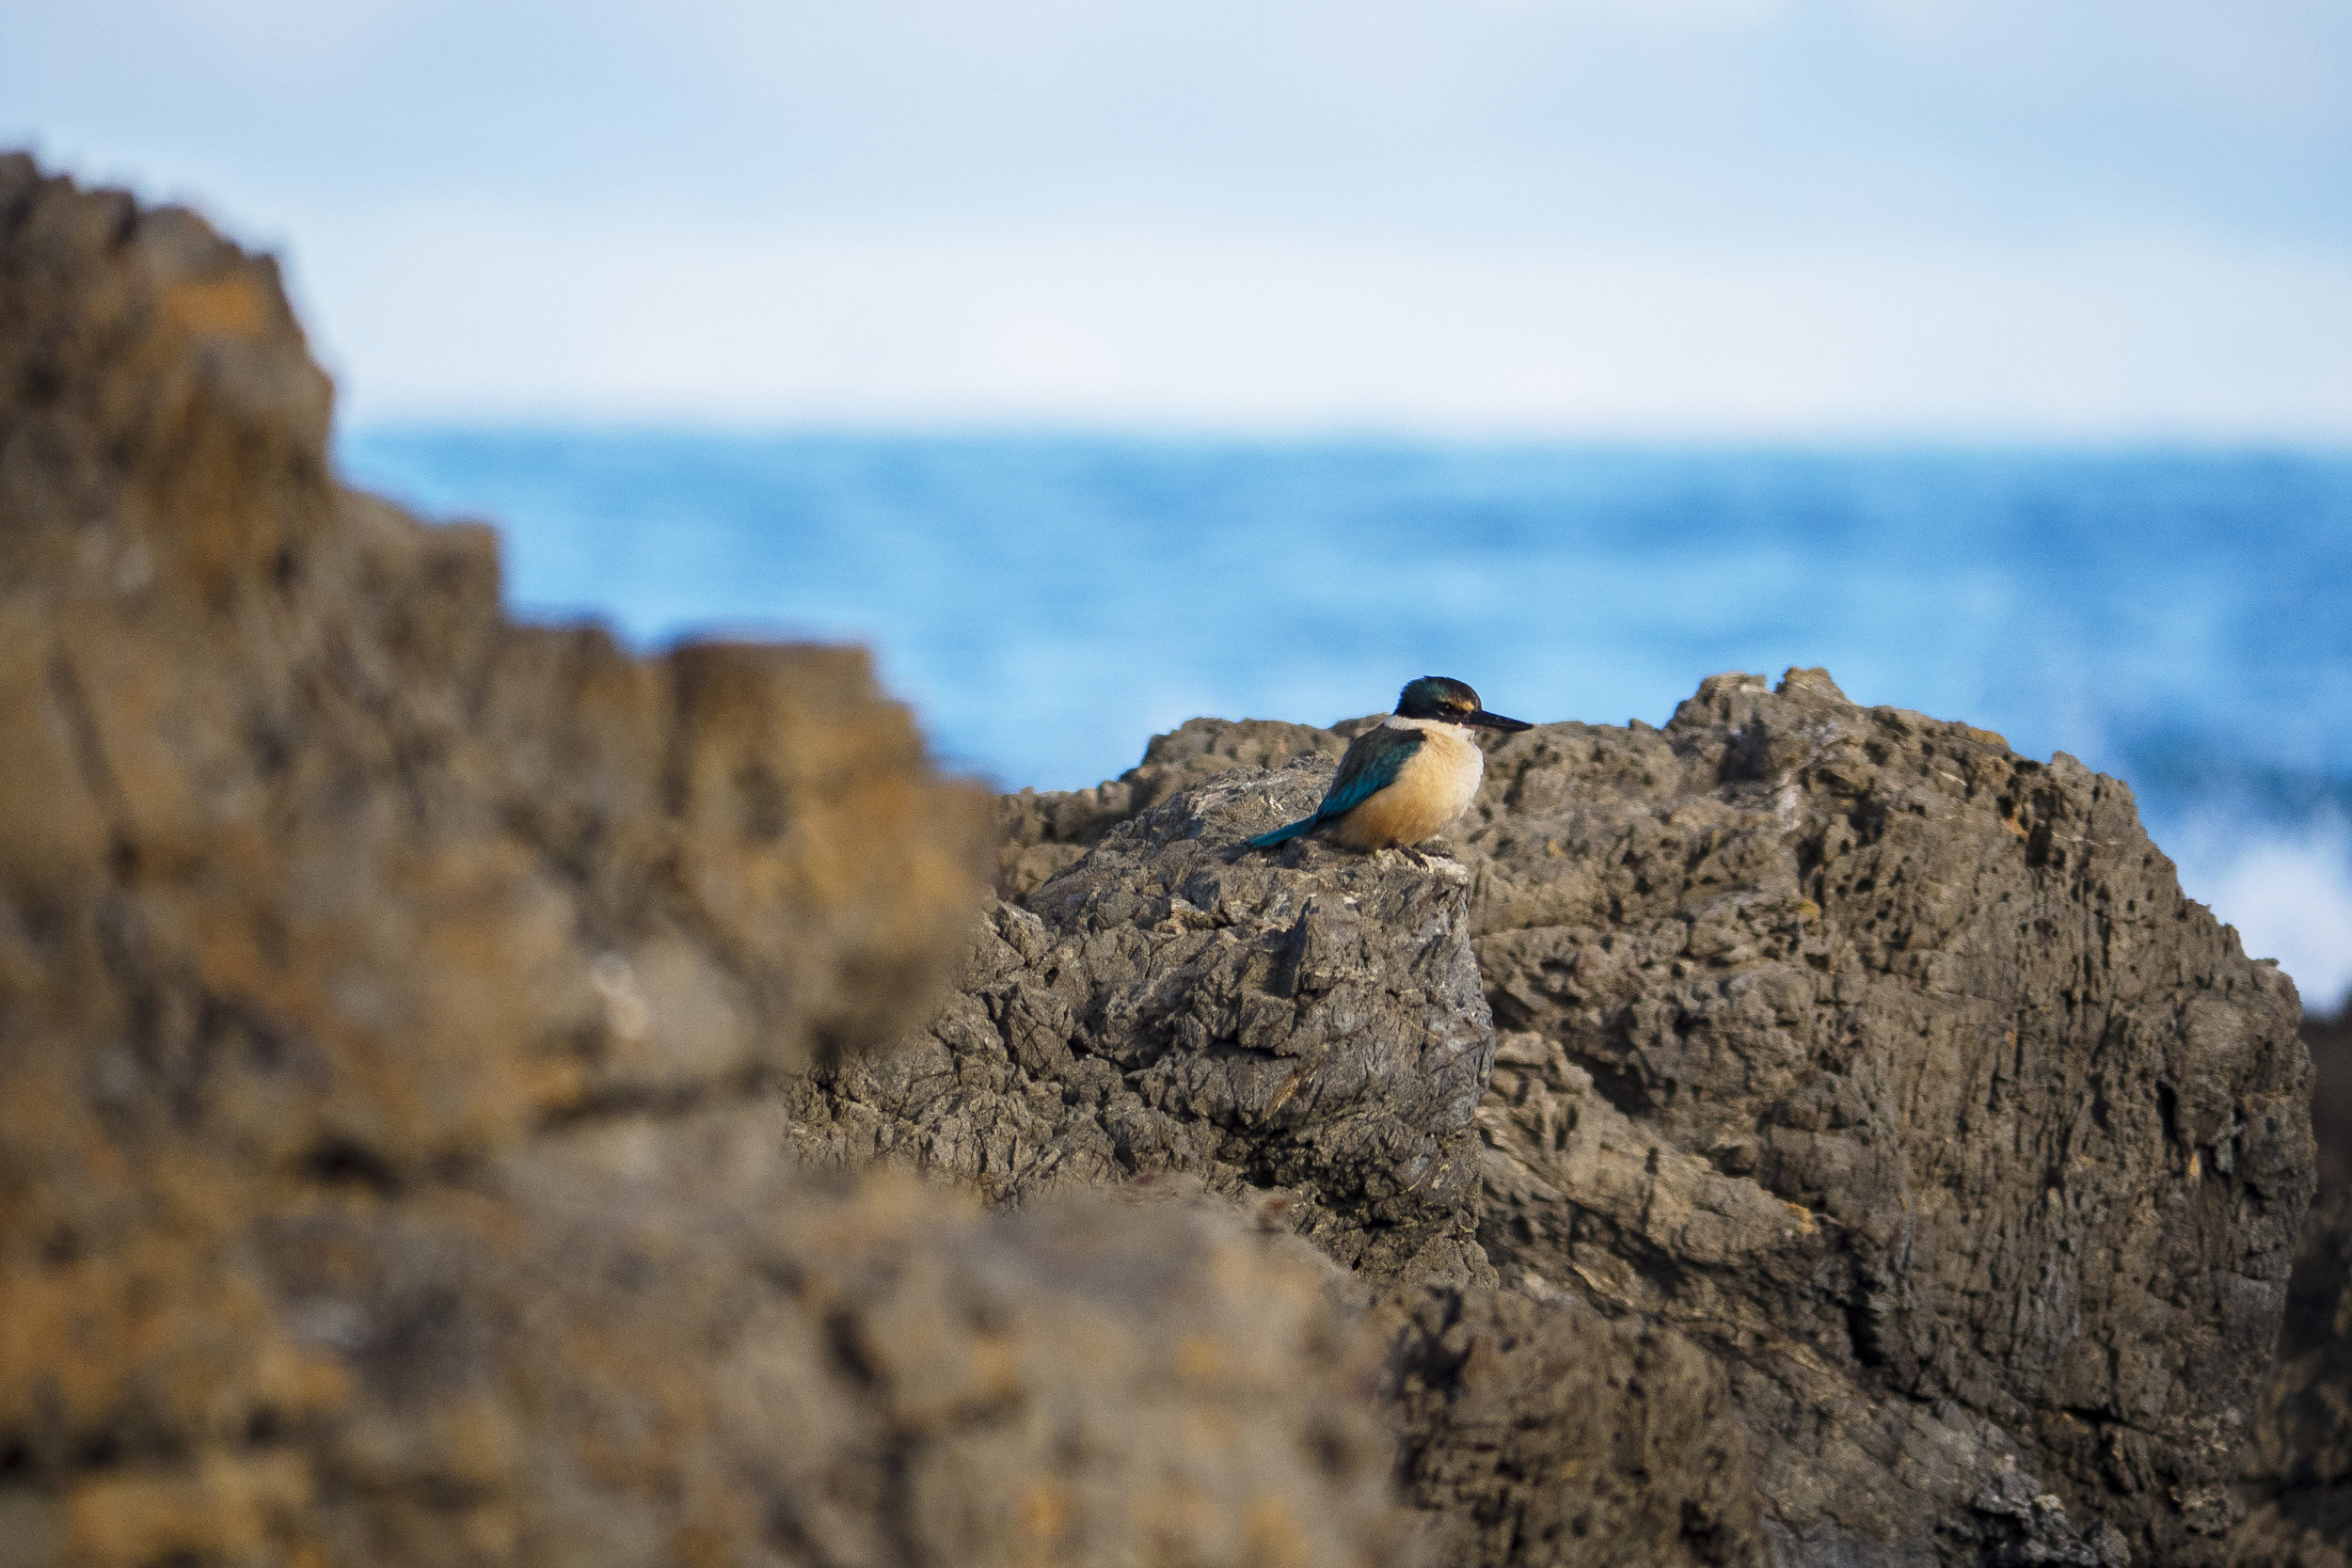 Sacred Kingfisher - Owhiro Bay, New Zealand - 2017